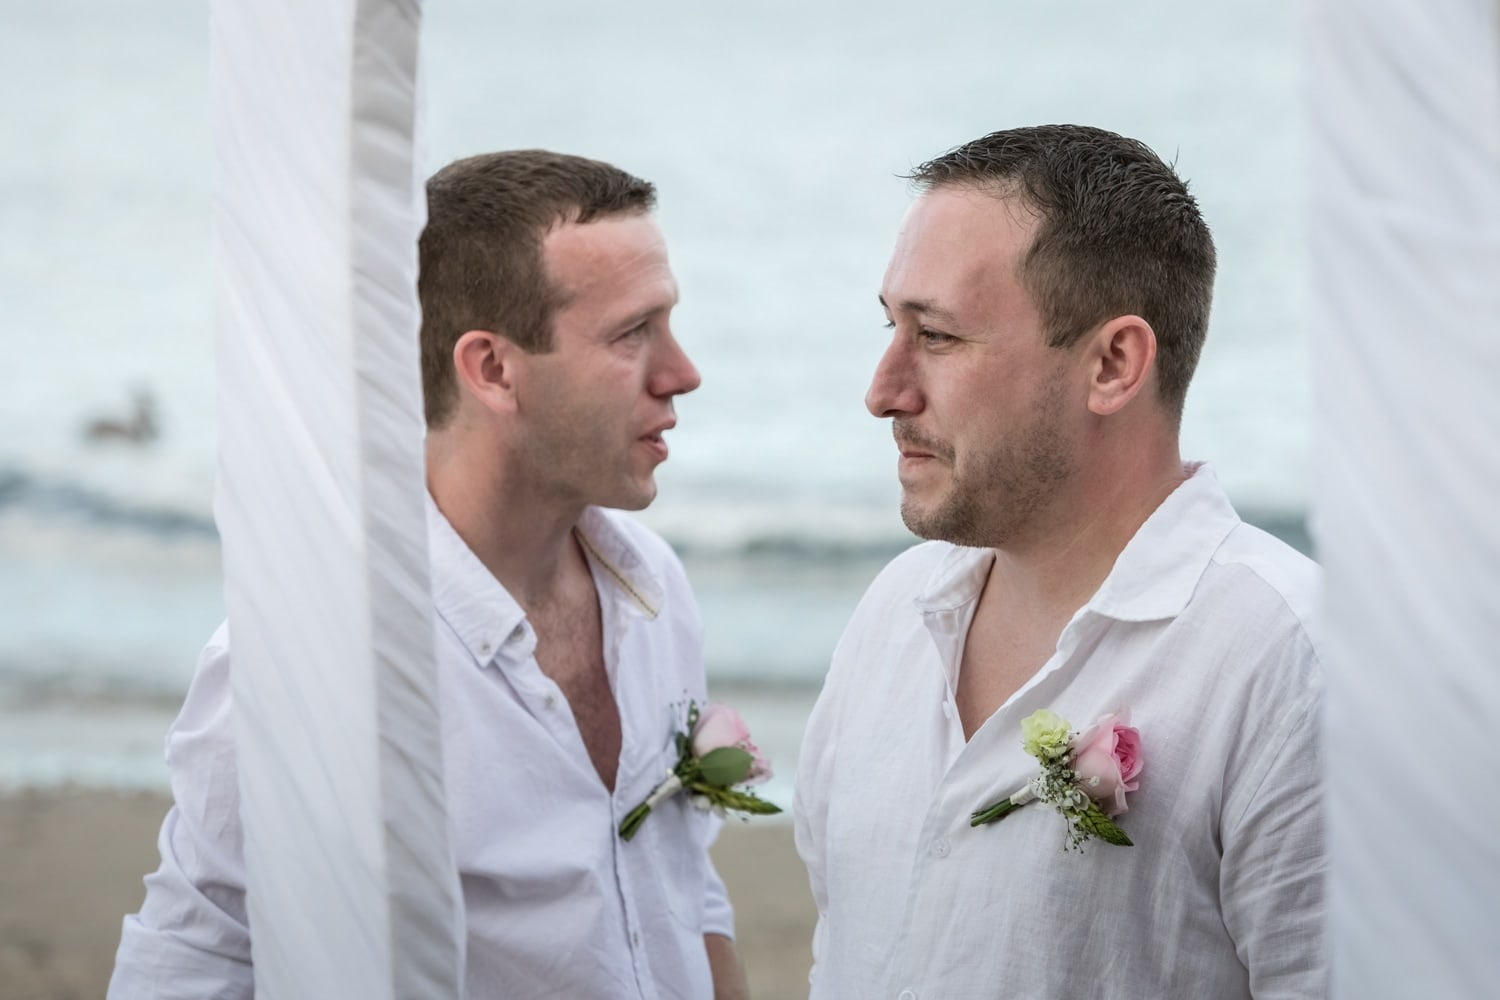 Emotional groom waiting at altar with best man as bride approaches.